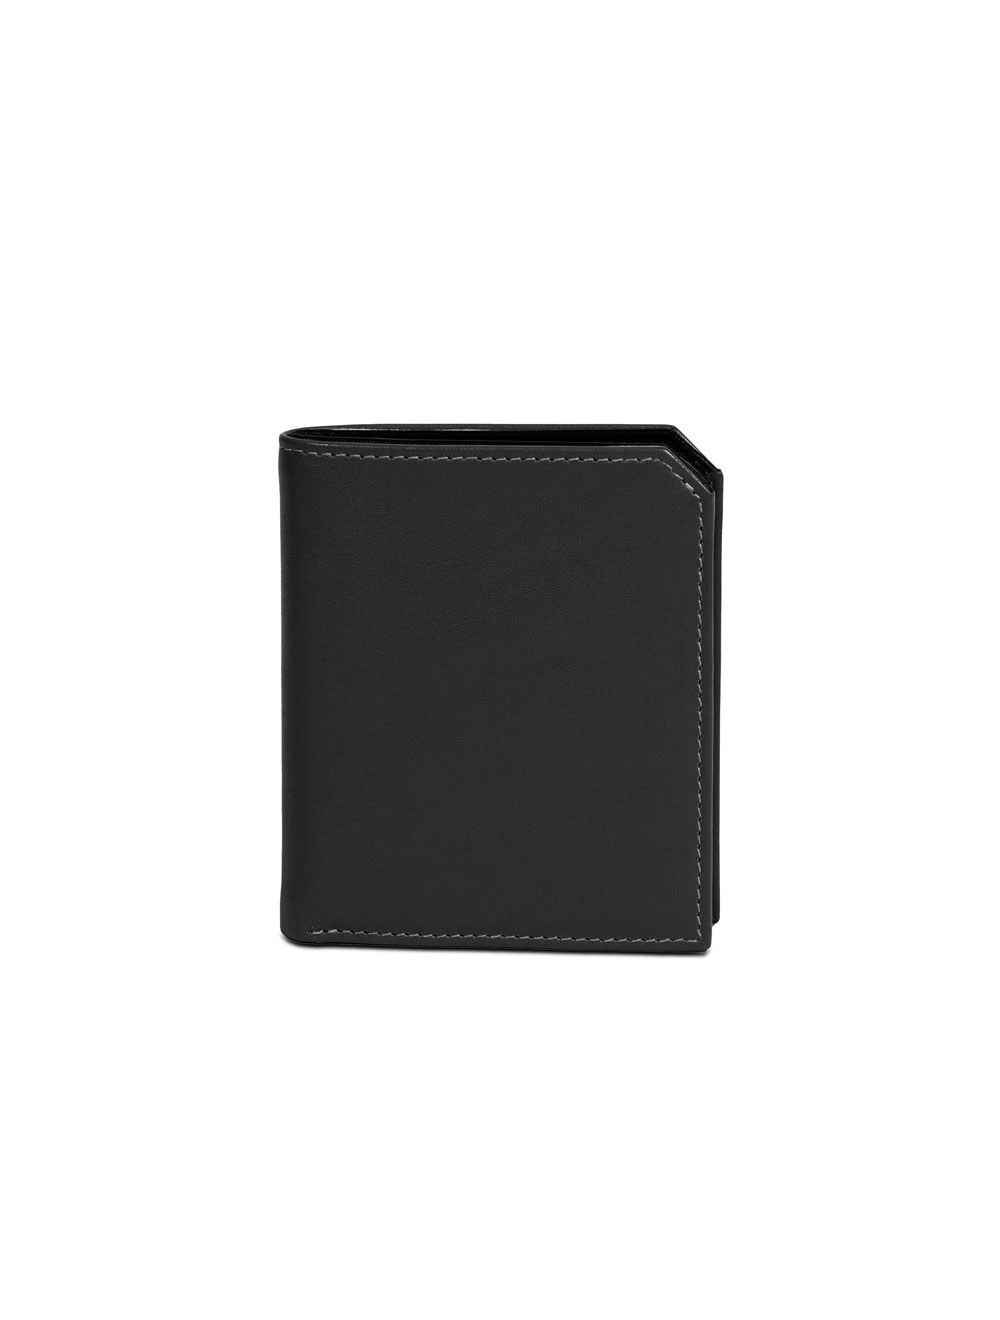 Wallet And Card Holder - Black